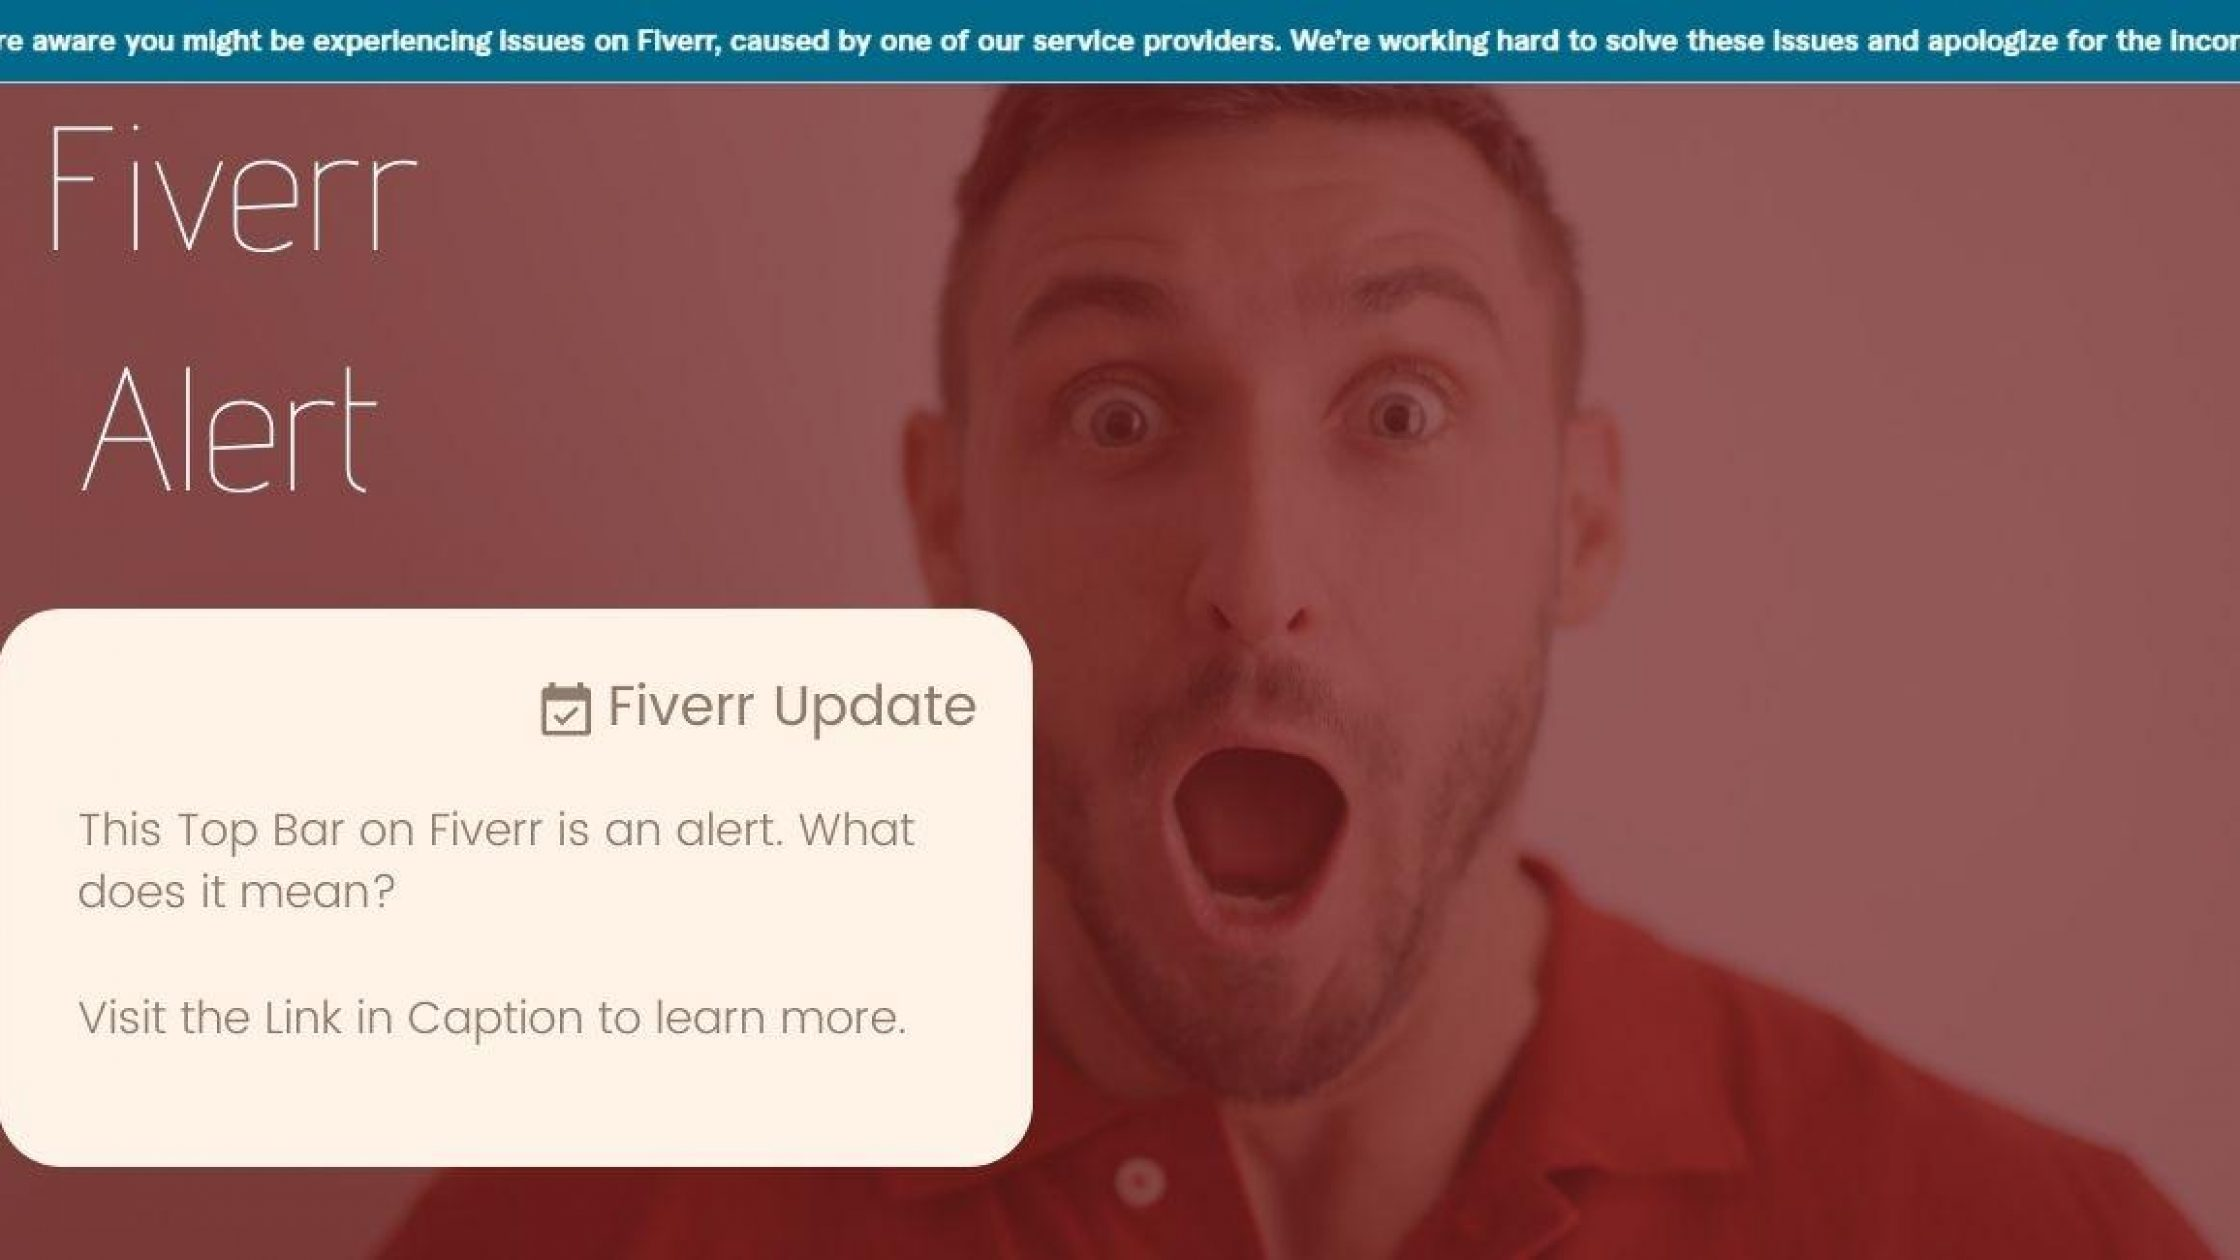 We're aware you might be experiencing issues on Fiverr